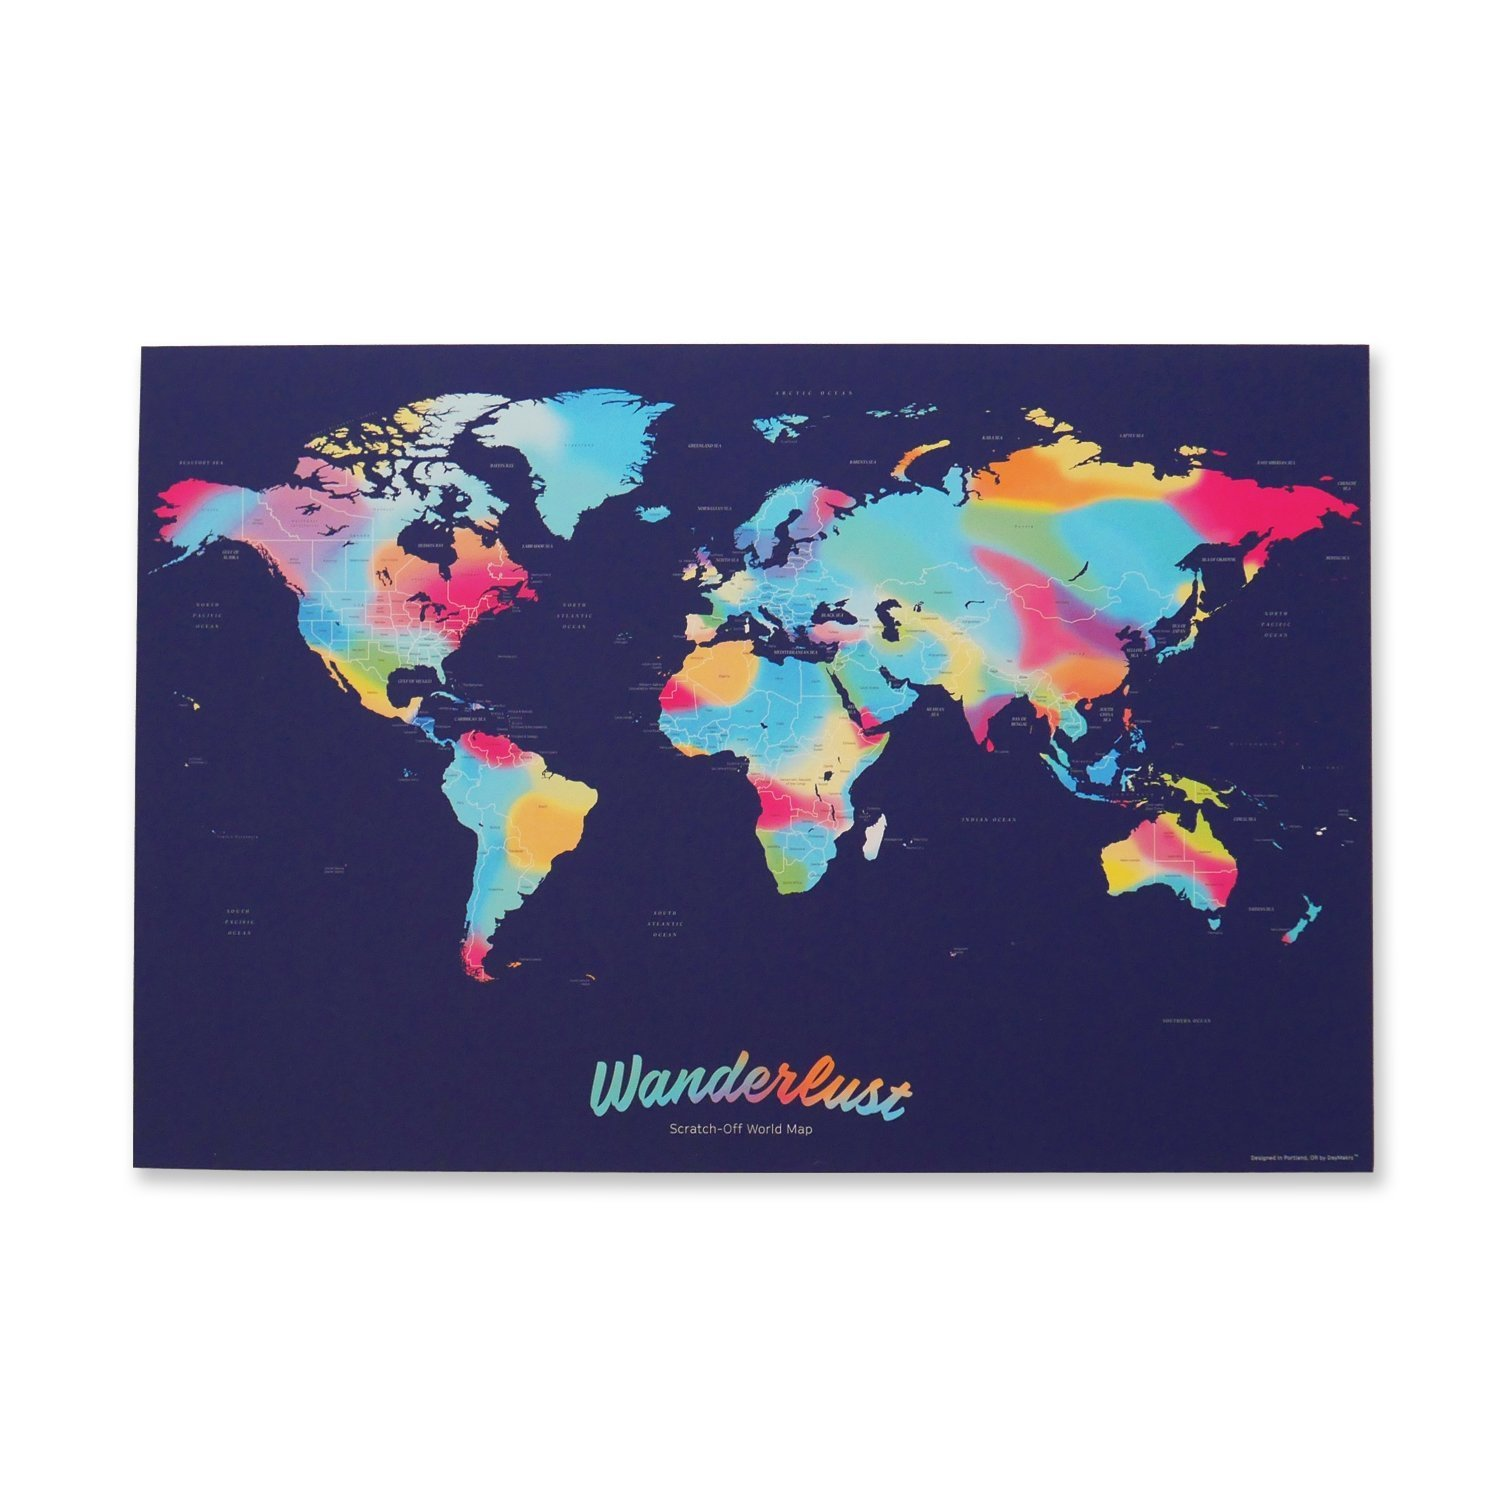 Scratch Off World Map :: Travel Art Poster with Over 214 Countries :: 16'' x 23.9'' (Fits 16'' x 24'' Frame), Gold Foil/Multicolor :: in Gift Tube with Scratch Pen & 5 Stickers by daymakrs